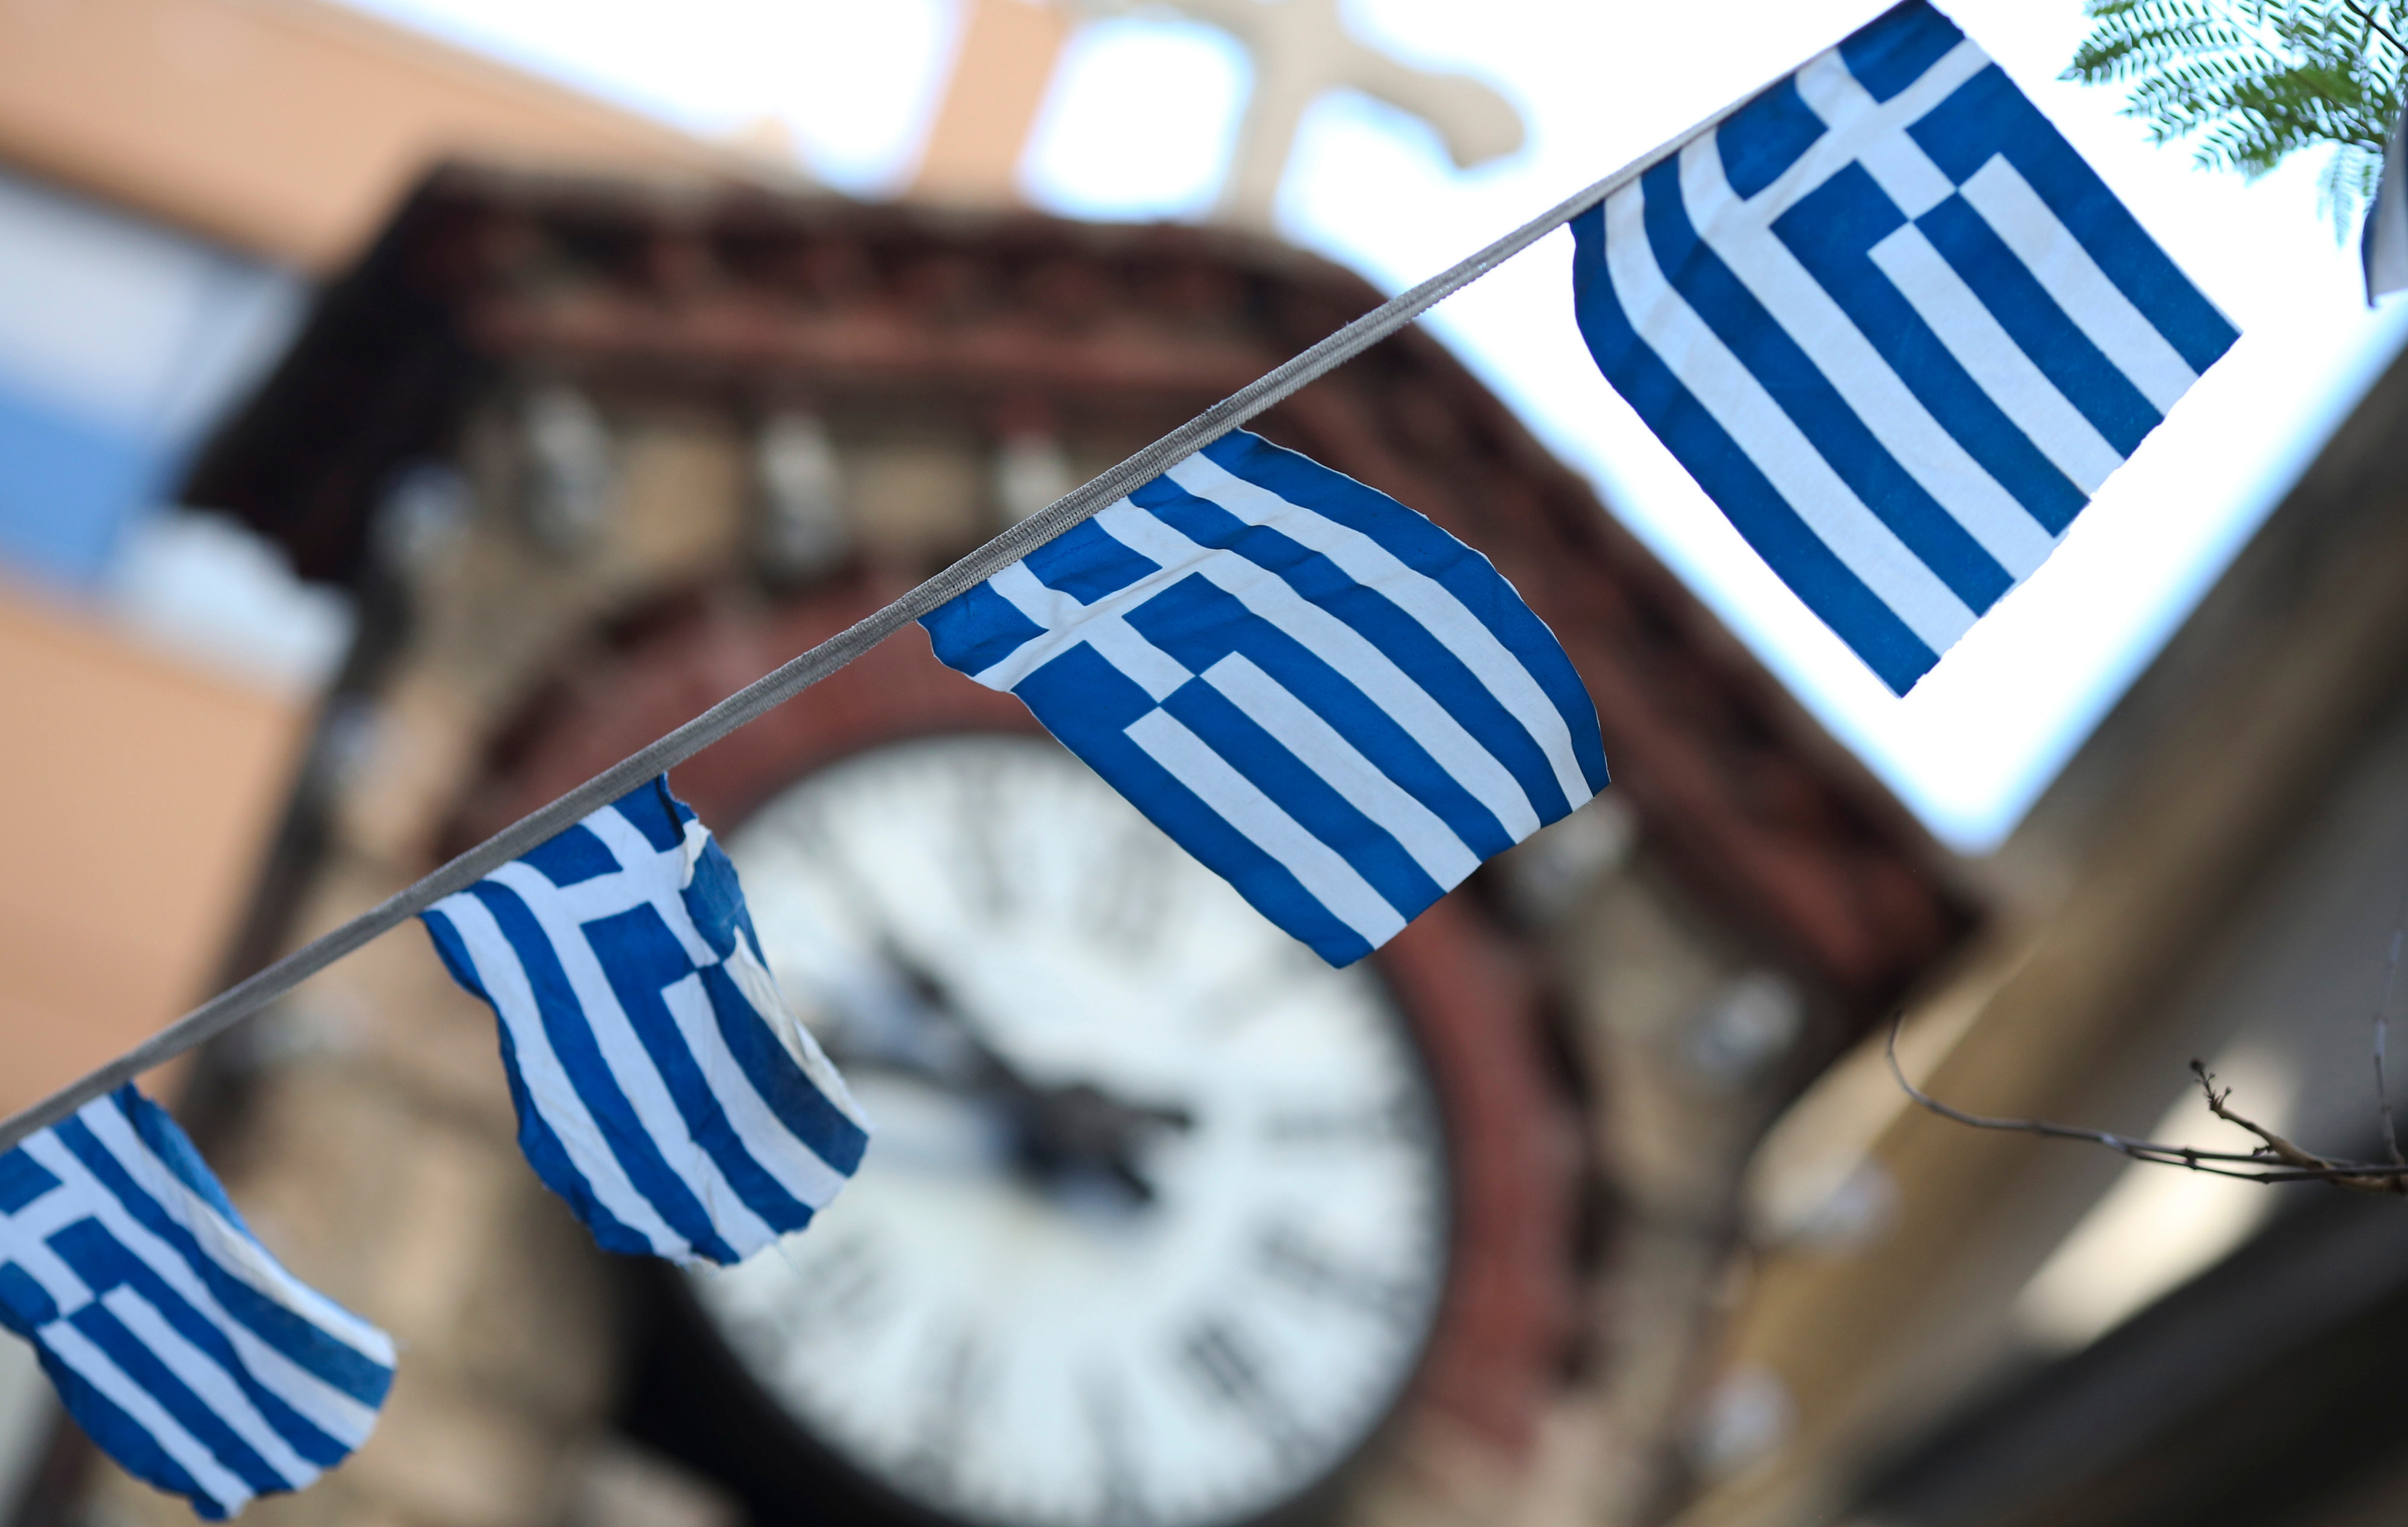 Greek national flag bunting hangs in front of a church clock tower in the Plaka district of Athens, Greece, on Thursday, July 2, 2015.